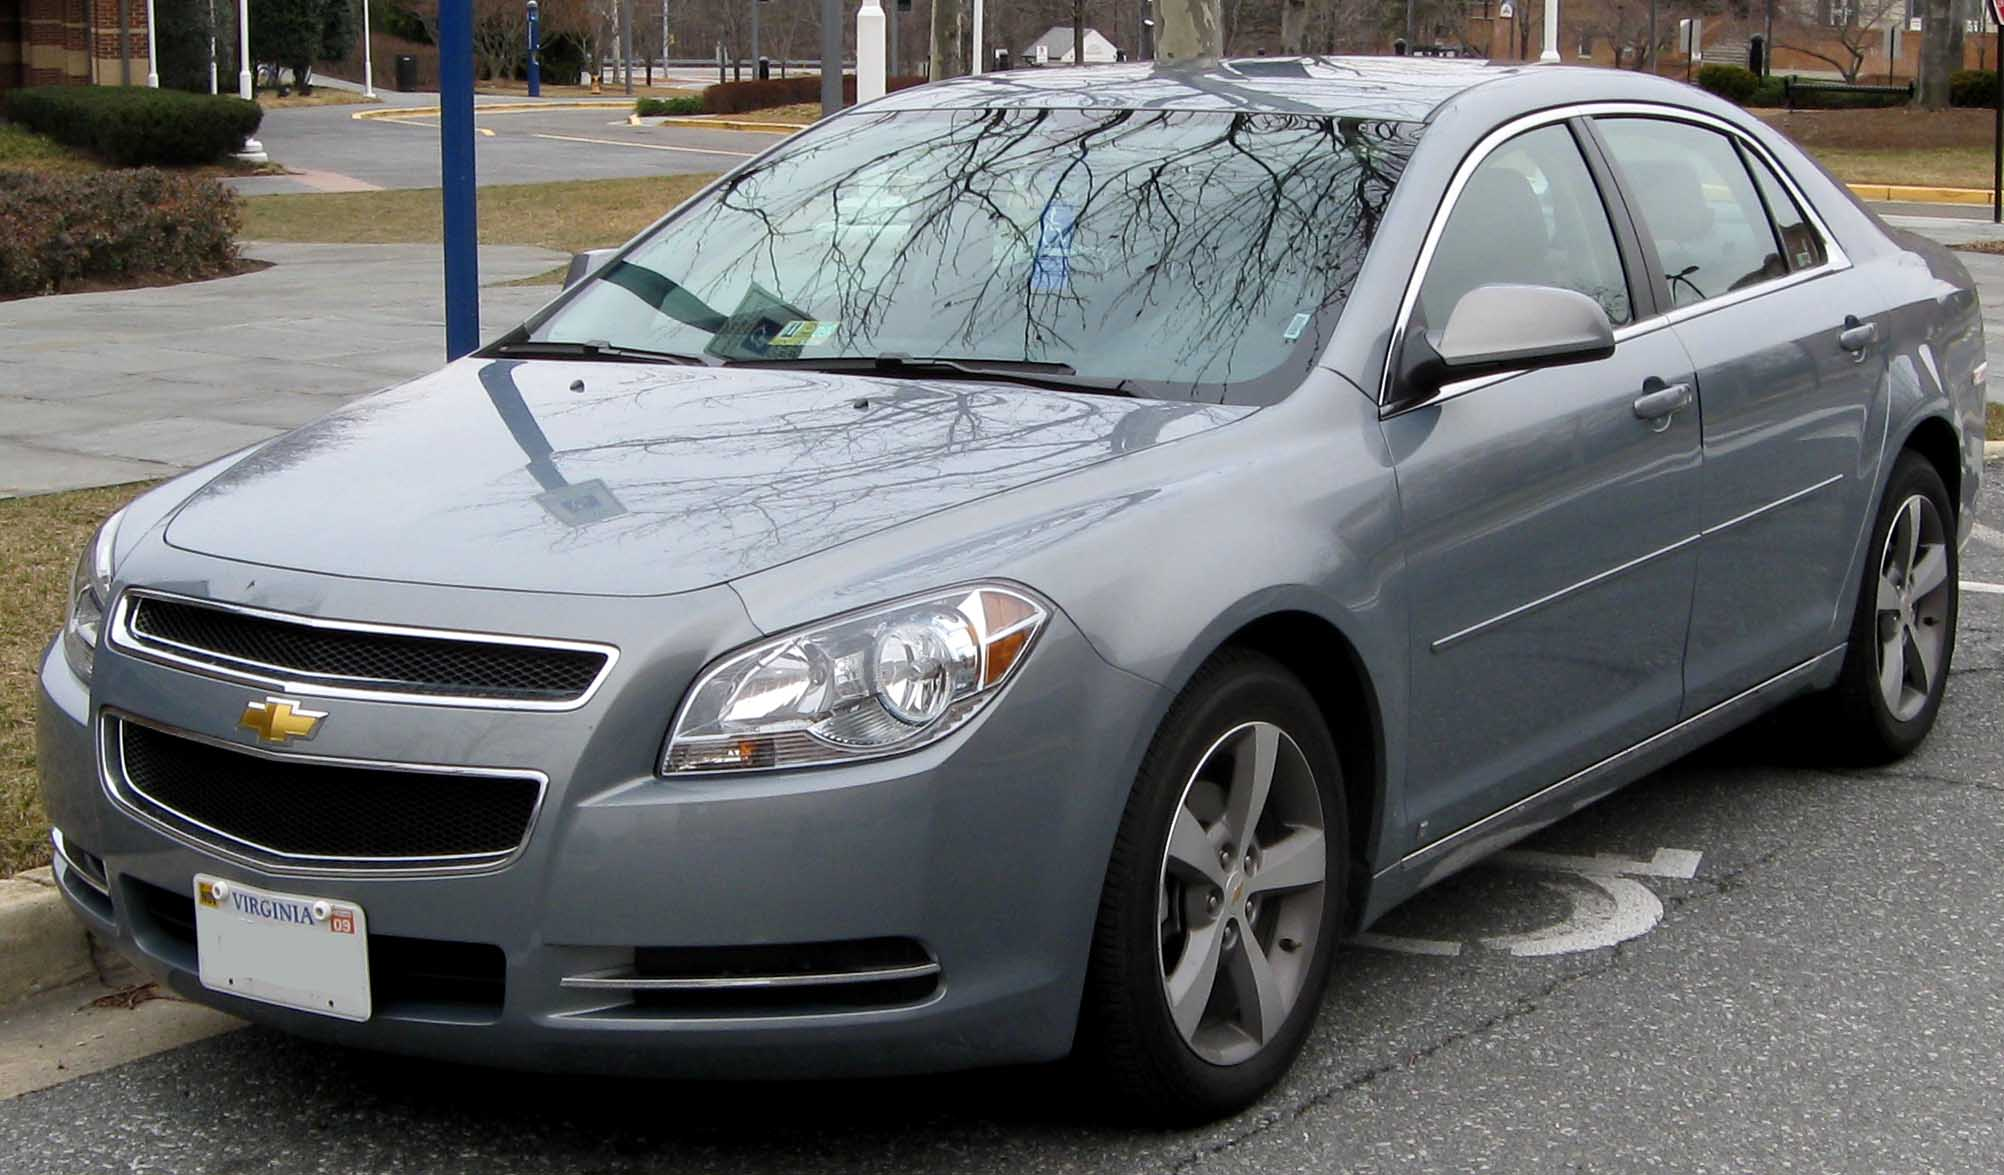 2008 chevy malibu 98 audi a4 fuse diagram body side molding information and pics forum